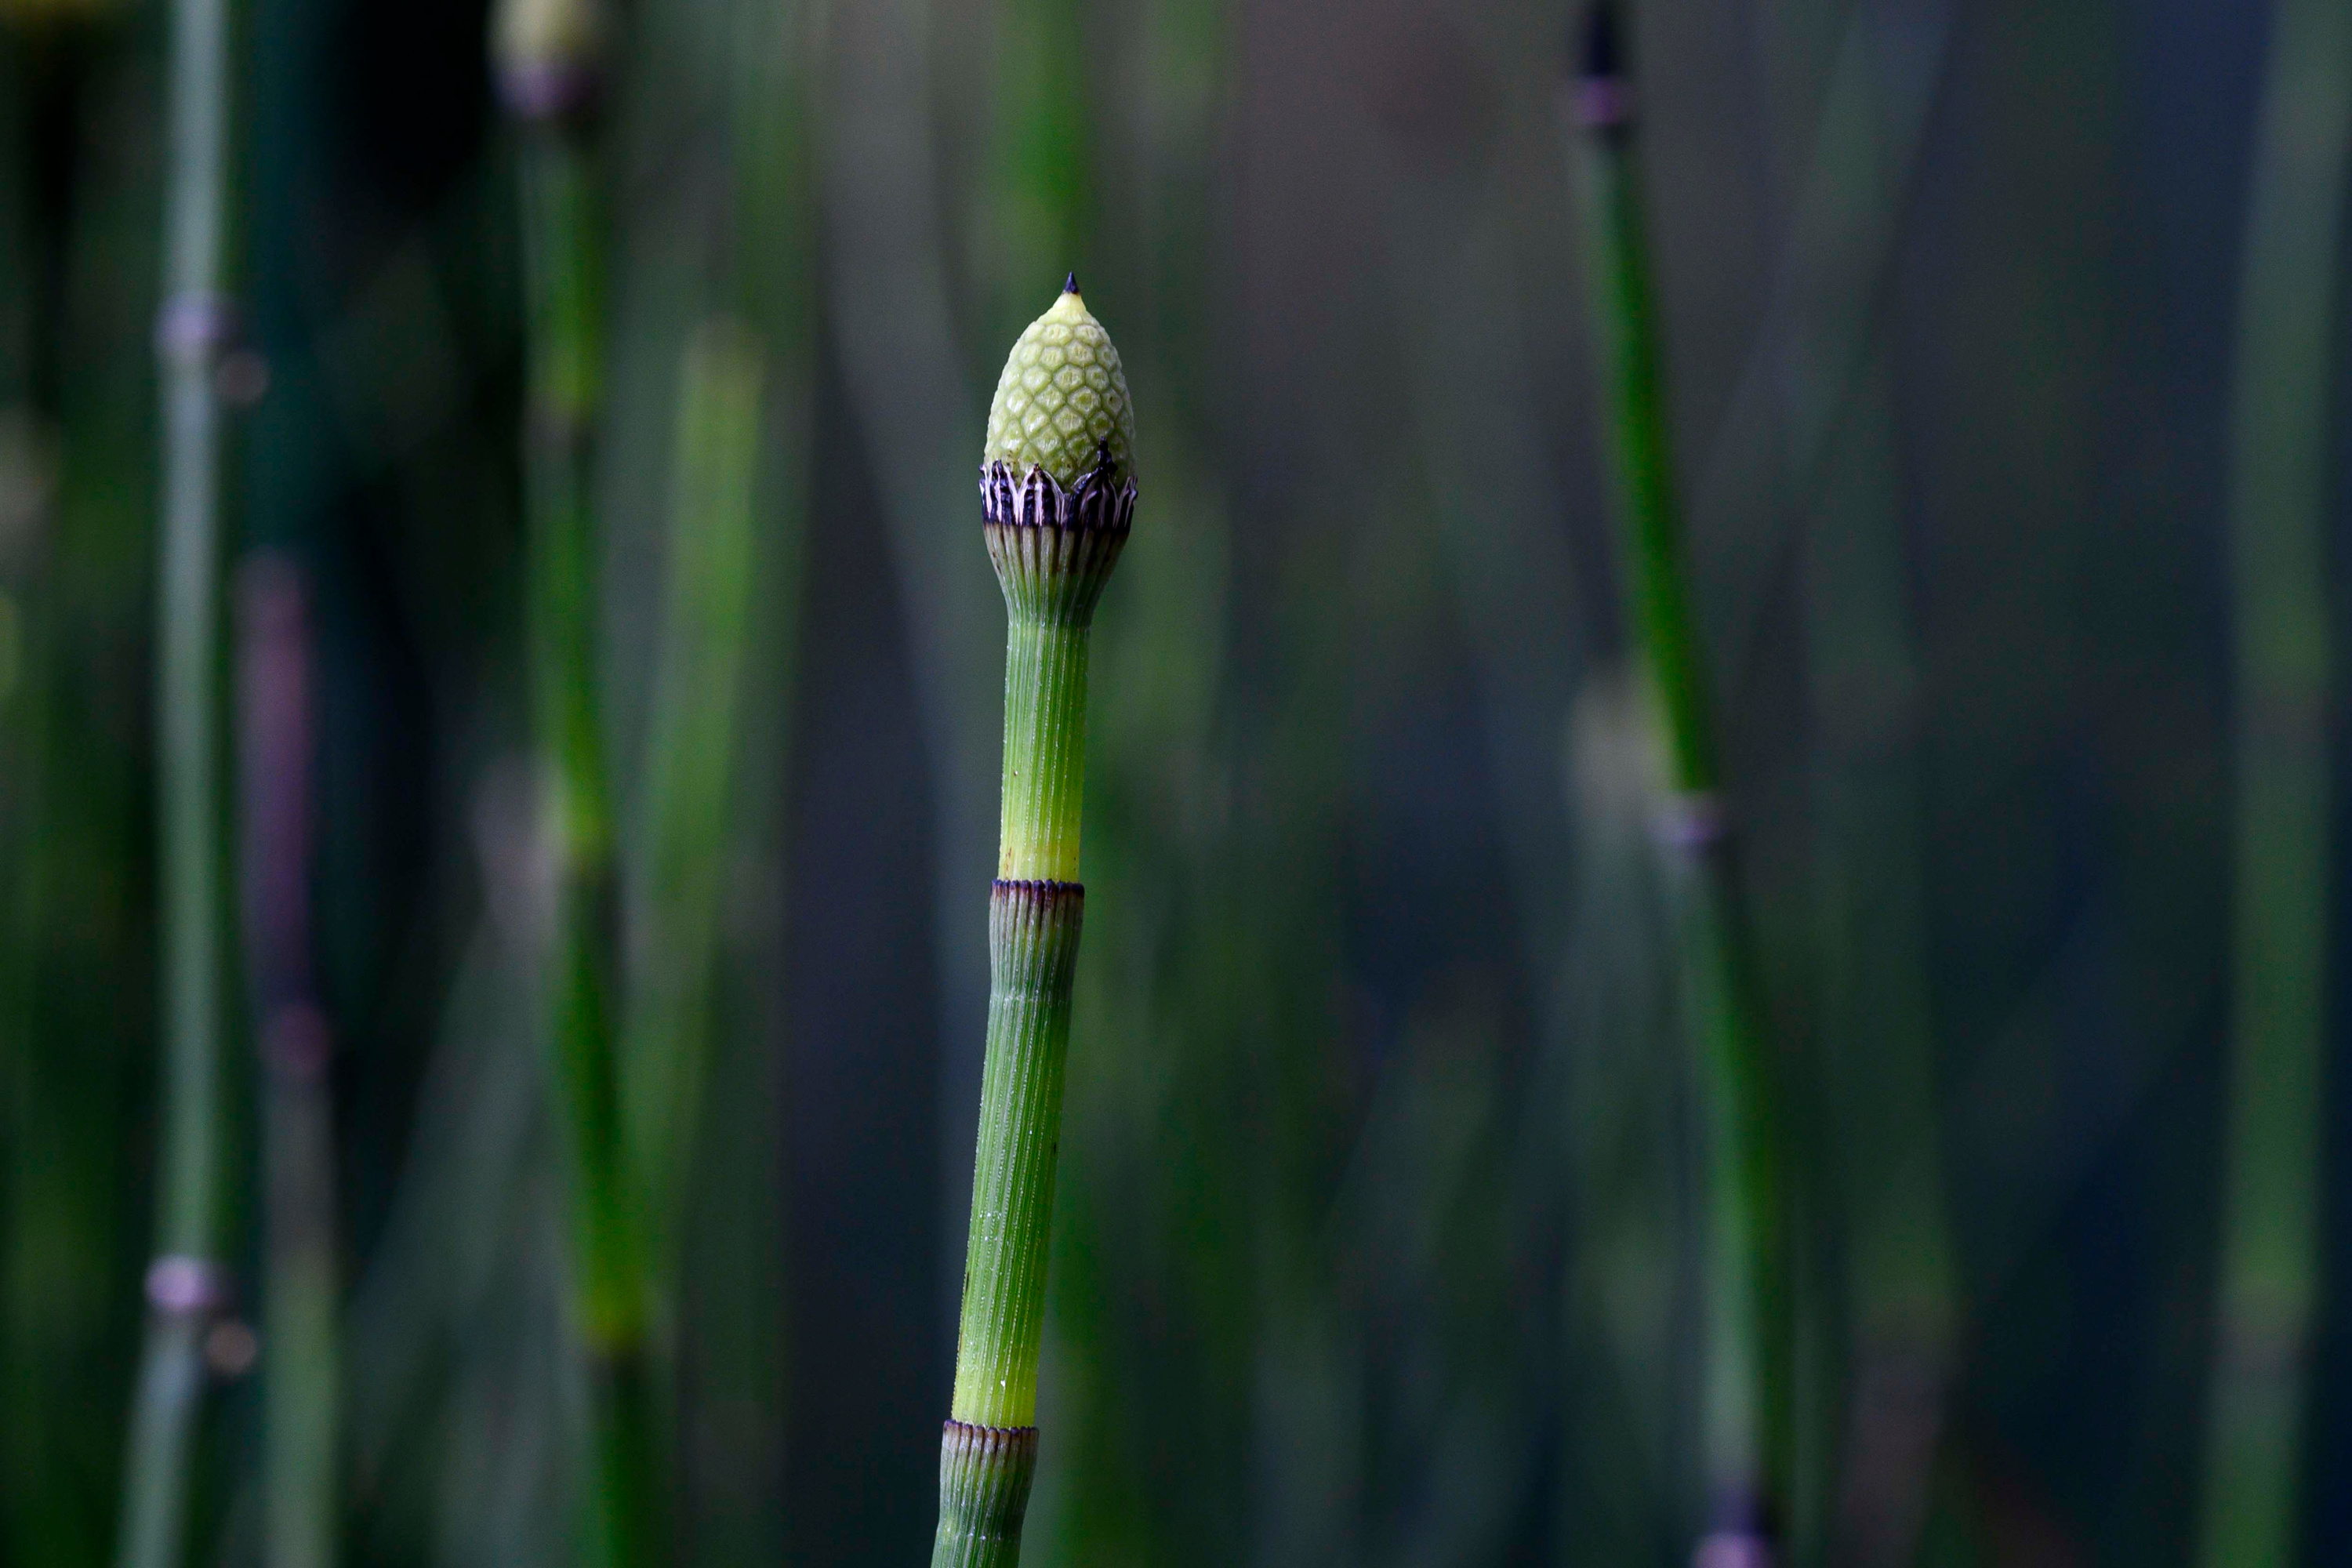 A single stem of horsetail, showing a closeup of the geometric patterns found in nature